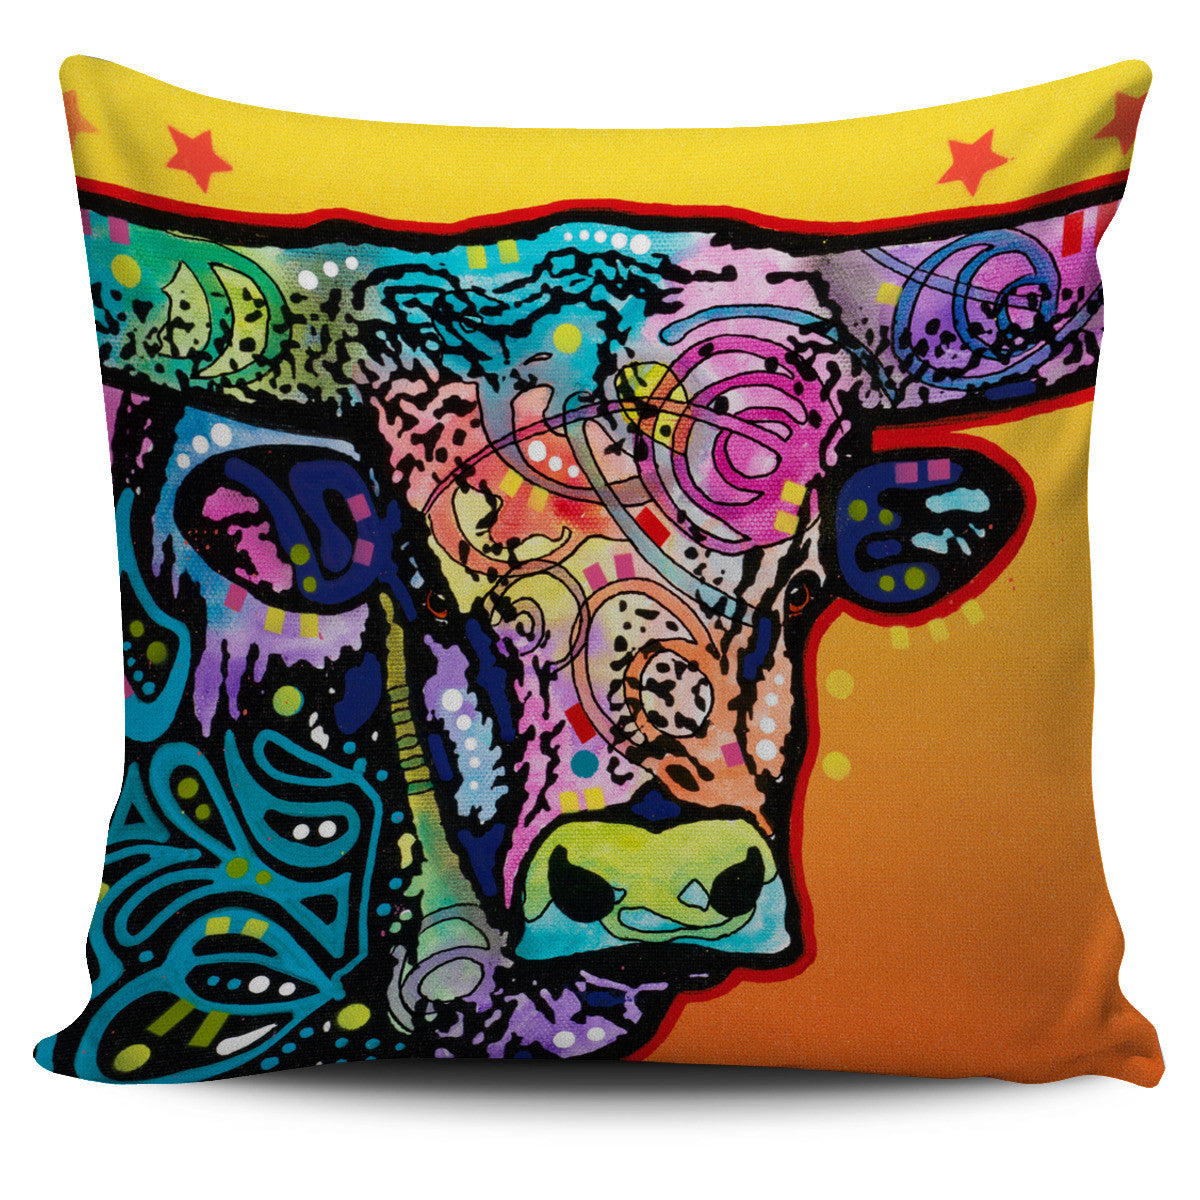 Bull Series Pillow Covers